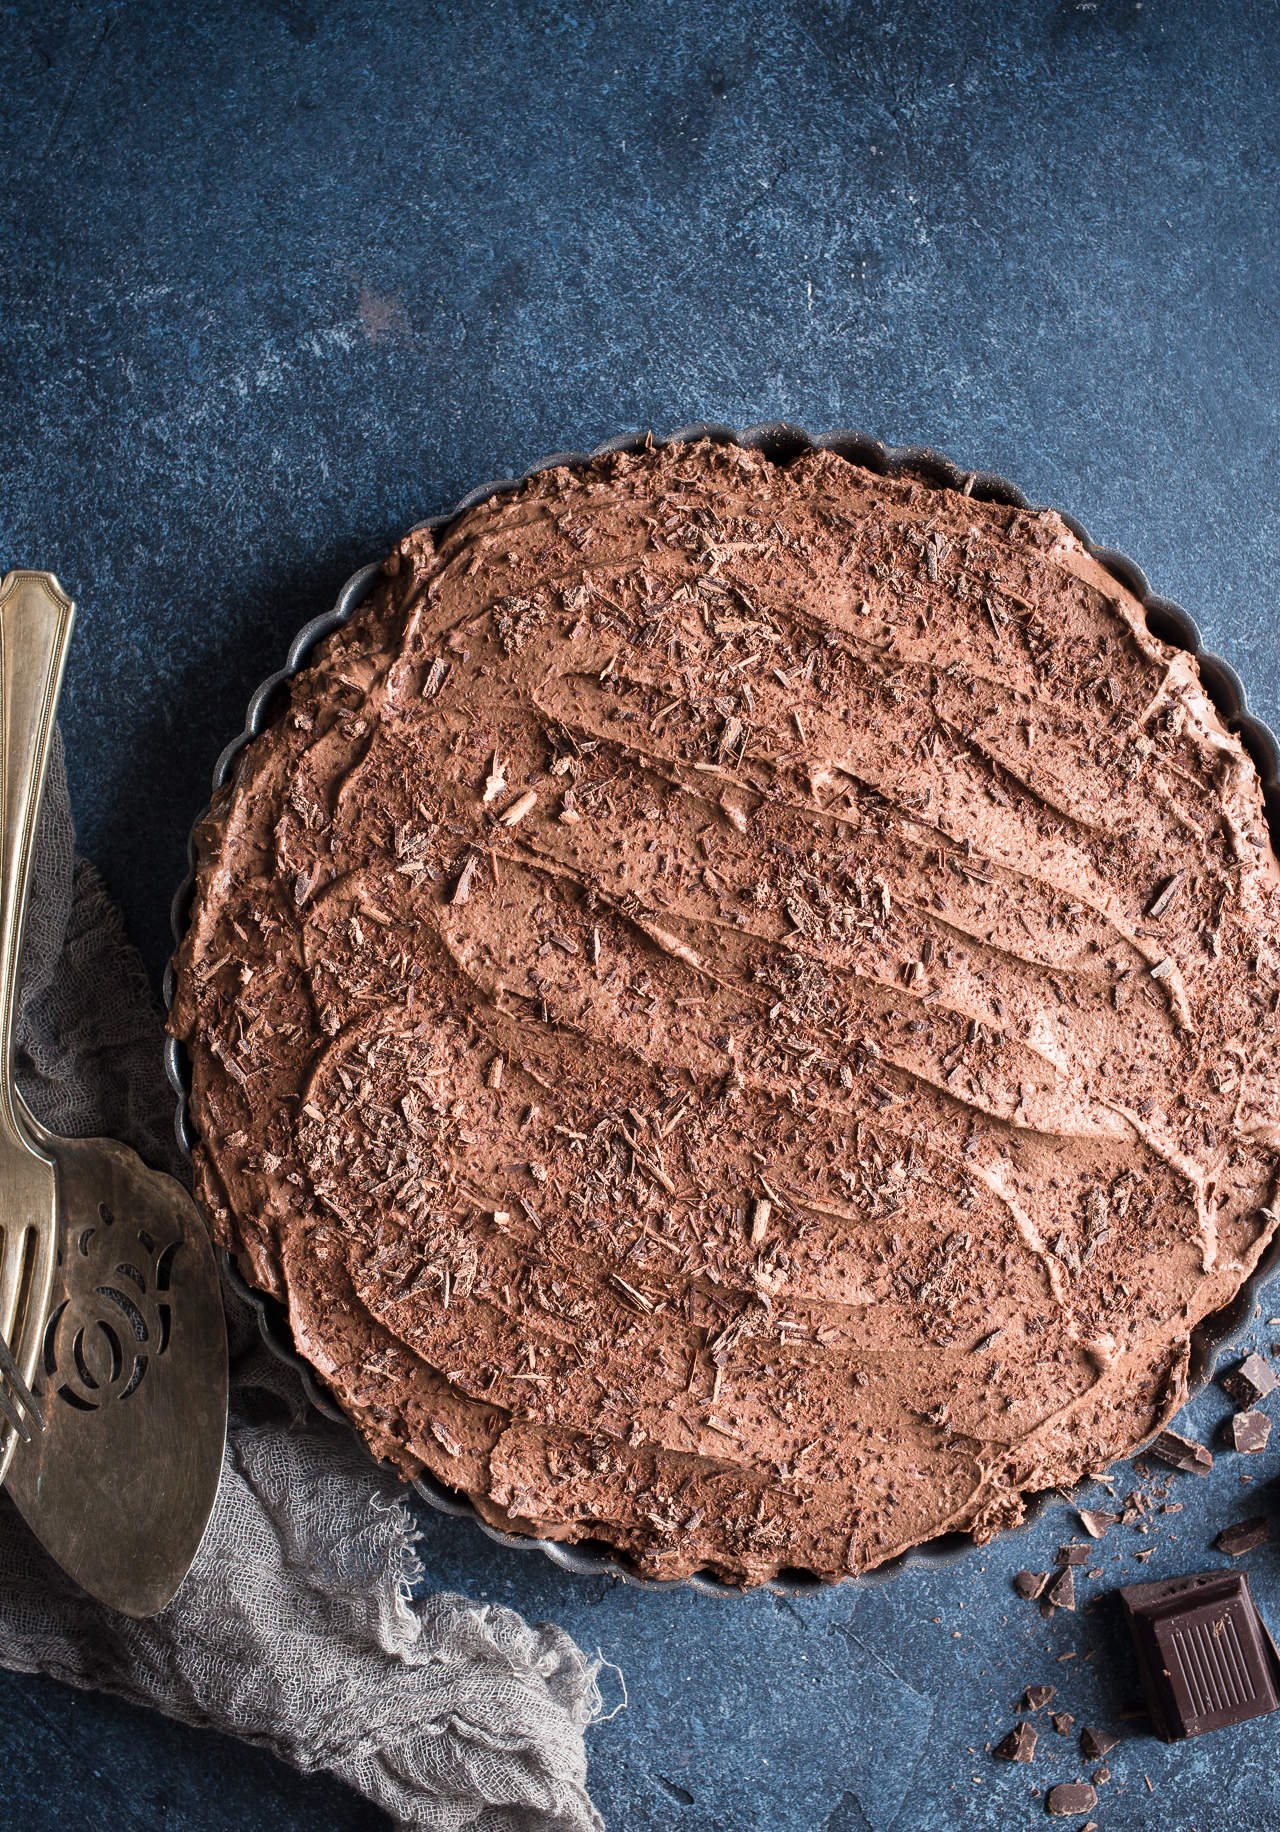 Gluten-Free Chocolate Stout Mousse Tart with Pretzel Peanut Crust